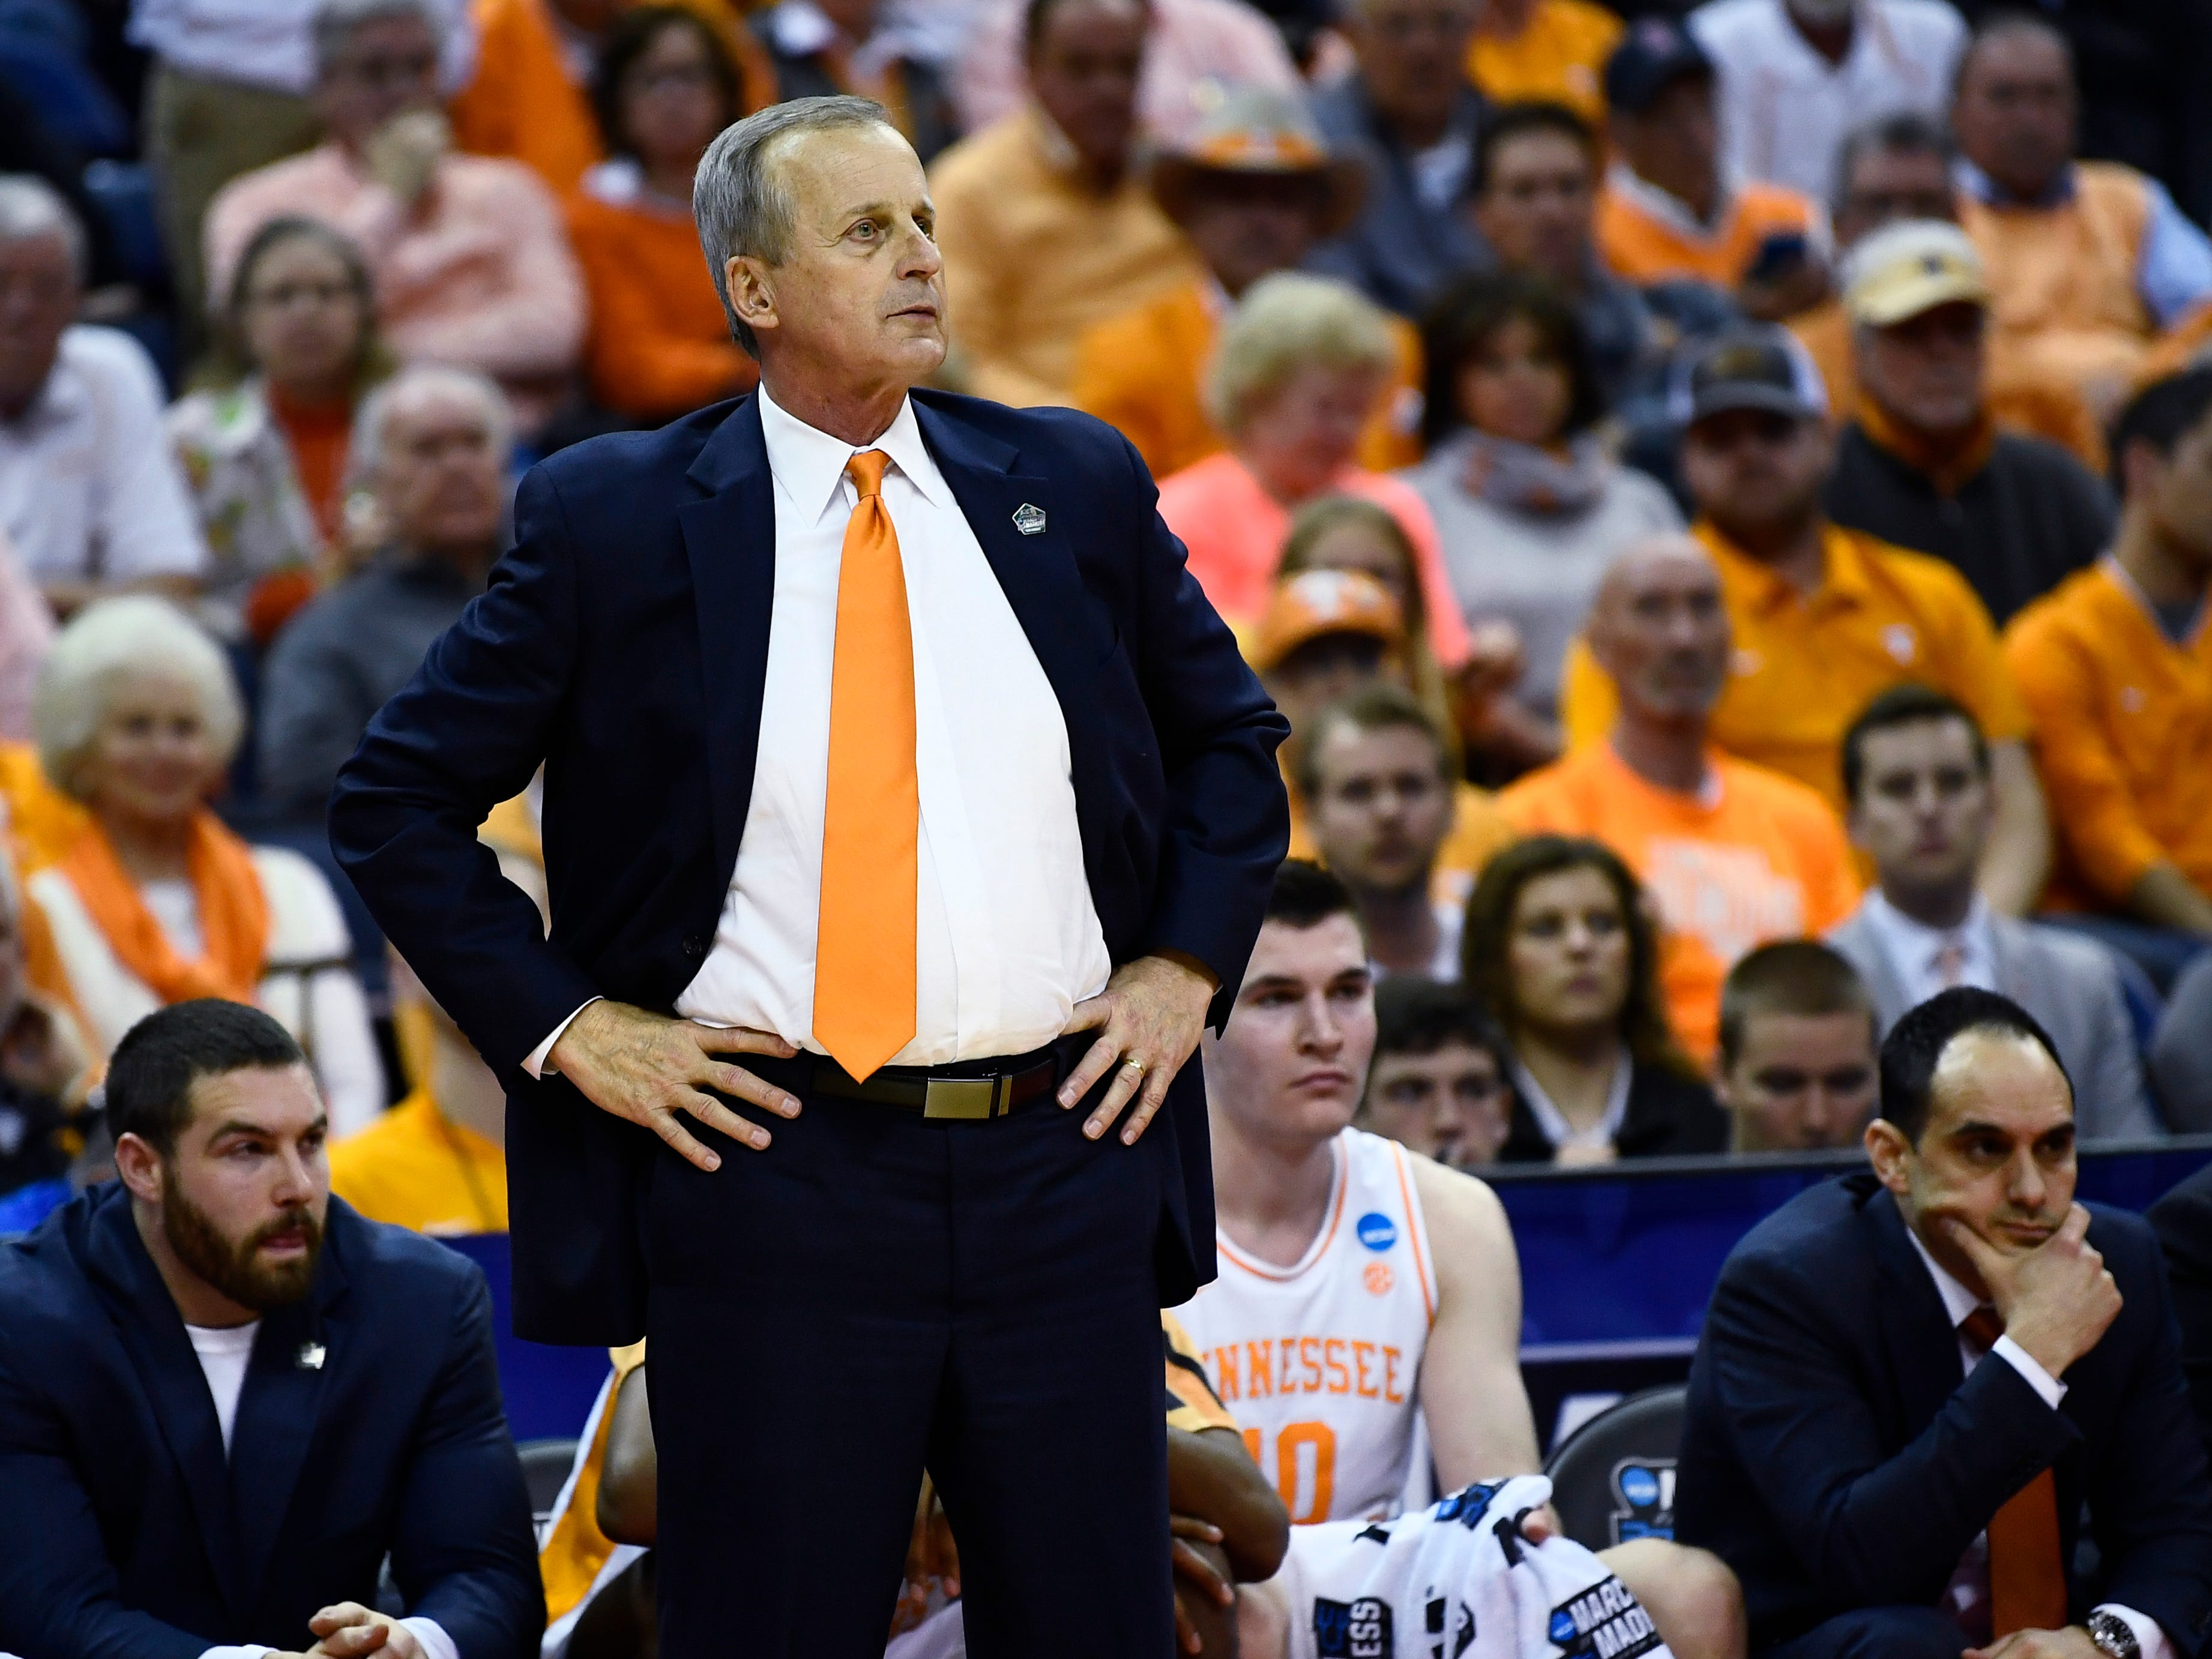 Tennessee head coach Rick Barnes watches action in the second half during the game against the Colgate Raiders in the first round of the NCAA Tournament at Nationwide Arena in Columbus, Ohio, on Friday, March 22, 2019.